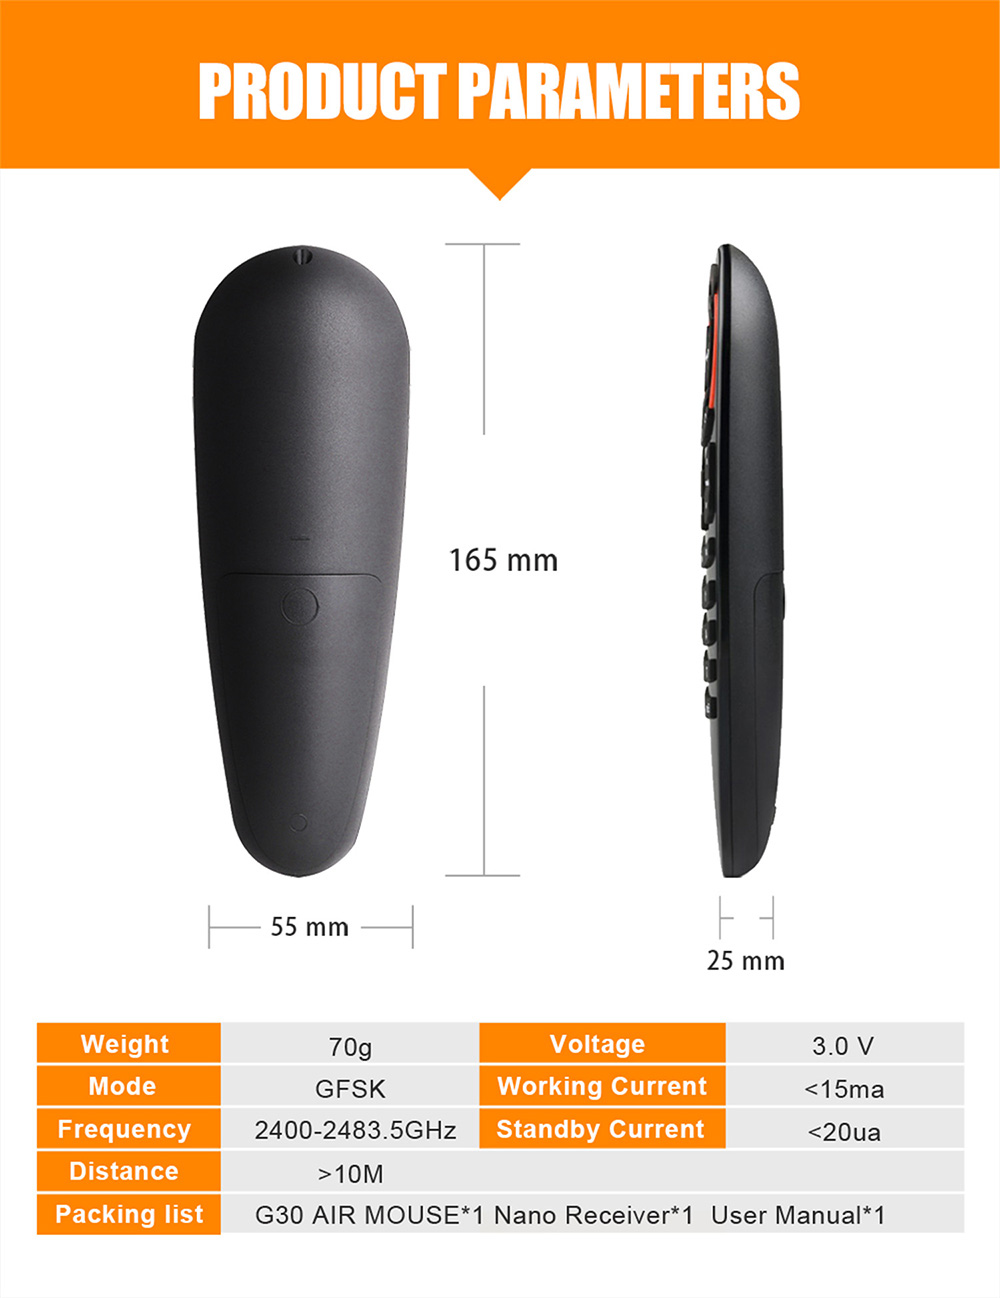 G30 Air Mouse 2.4G Wireless Mouse Infrared Control Android Top Box Projection Intelligent Remote Control - Black